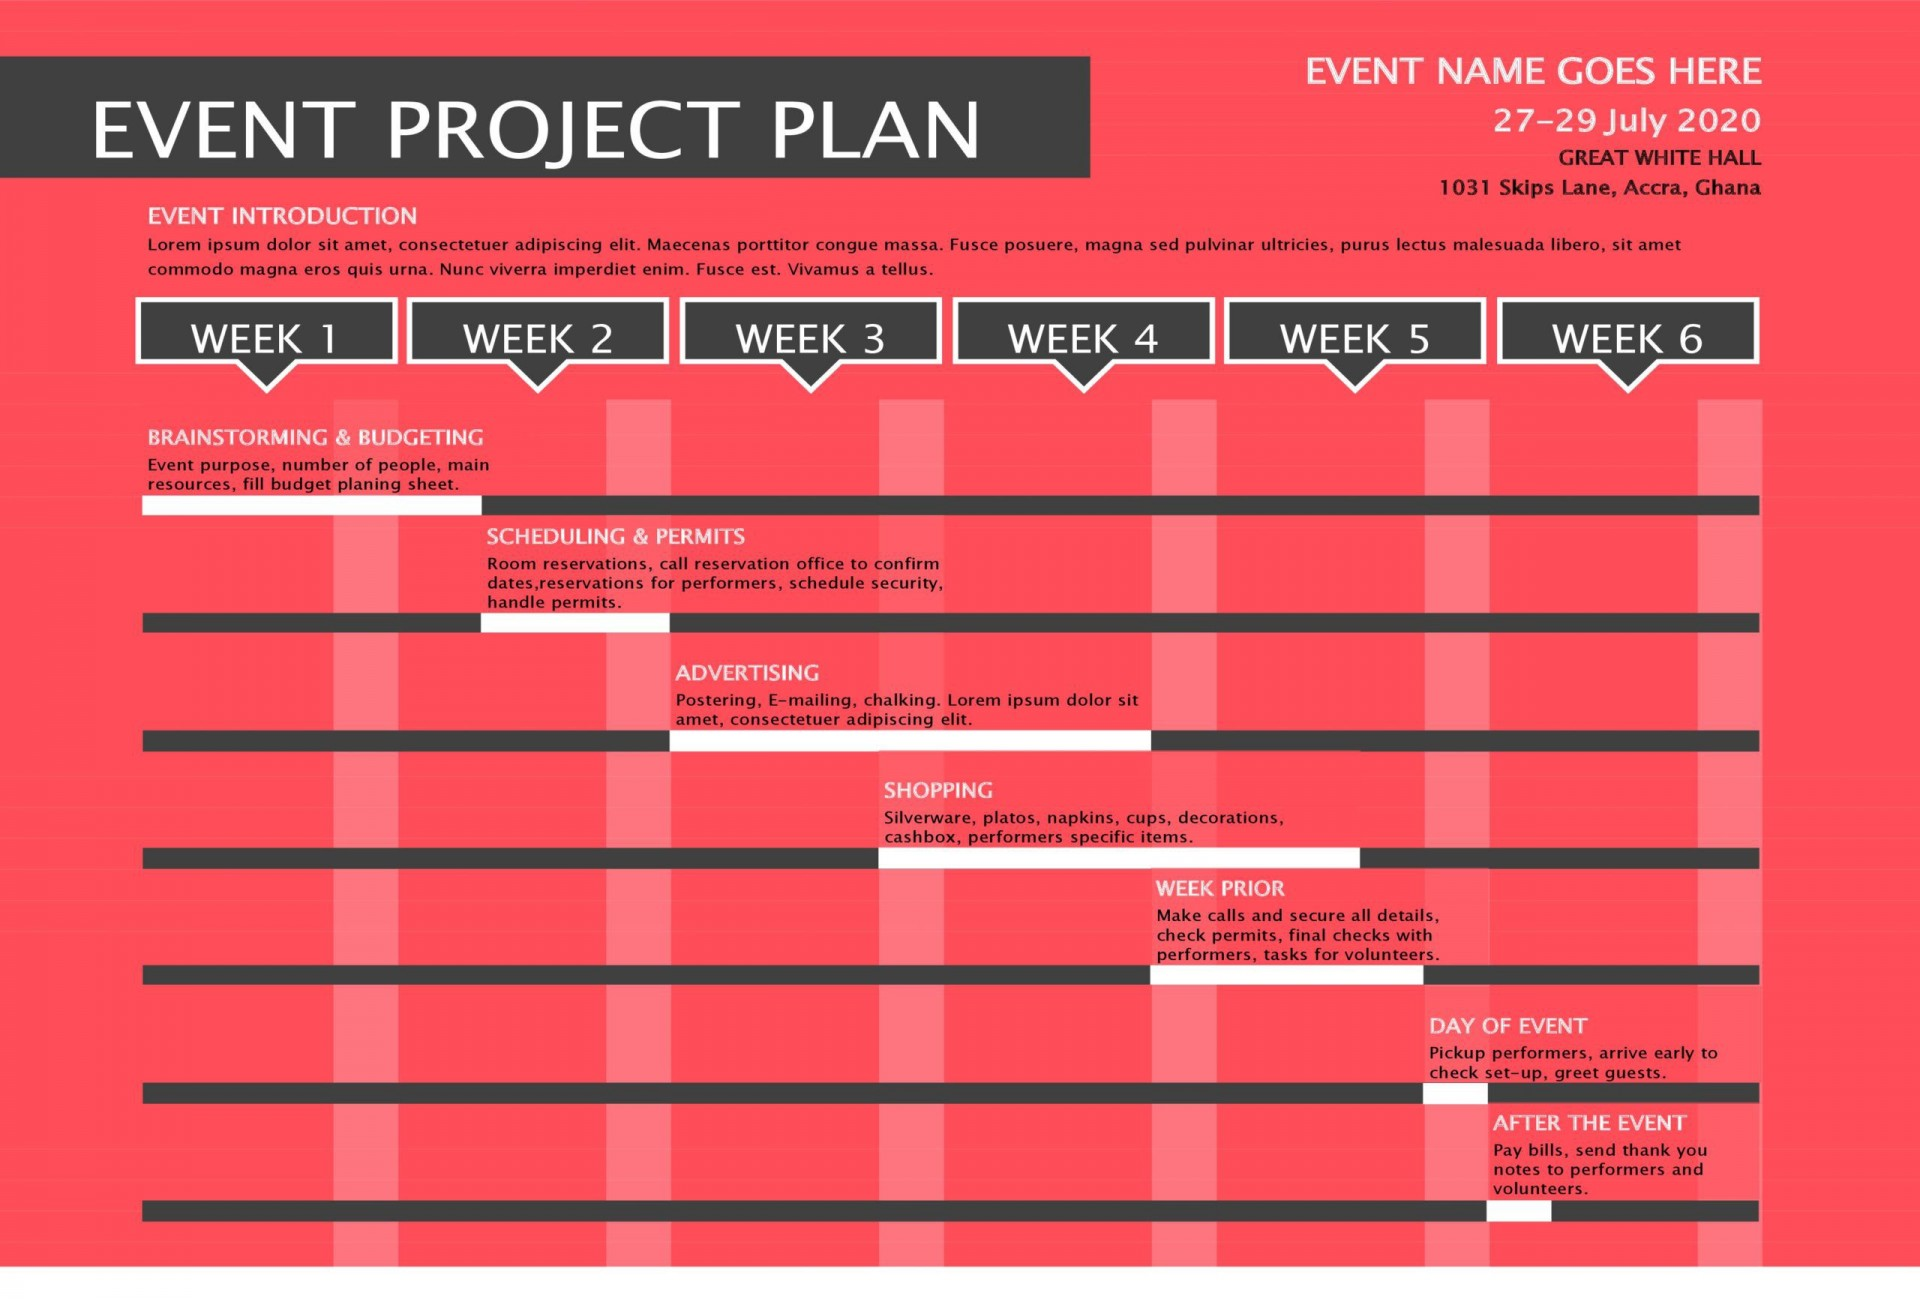 004 Stunning Project Planning Template Free Download Idea  Software Management Plan Excel Xl1920